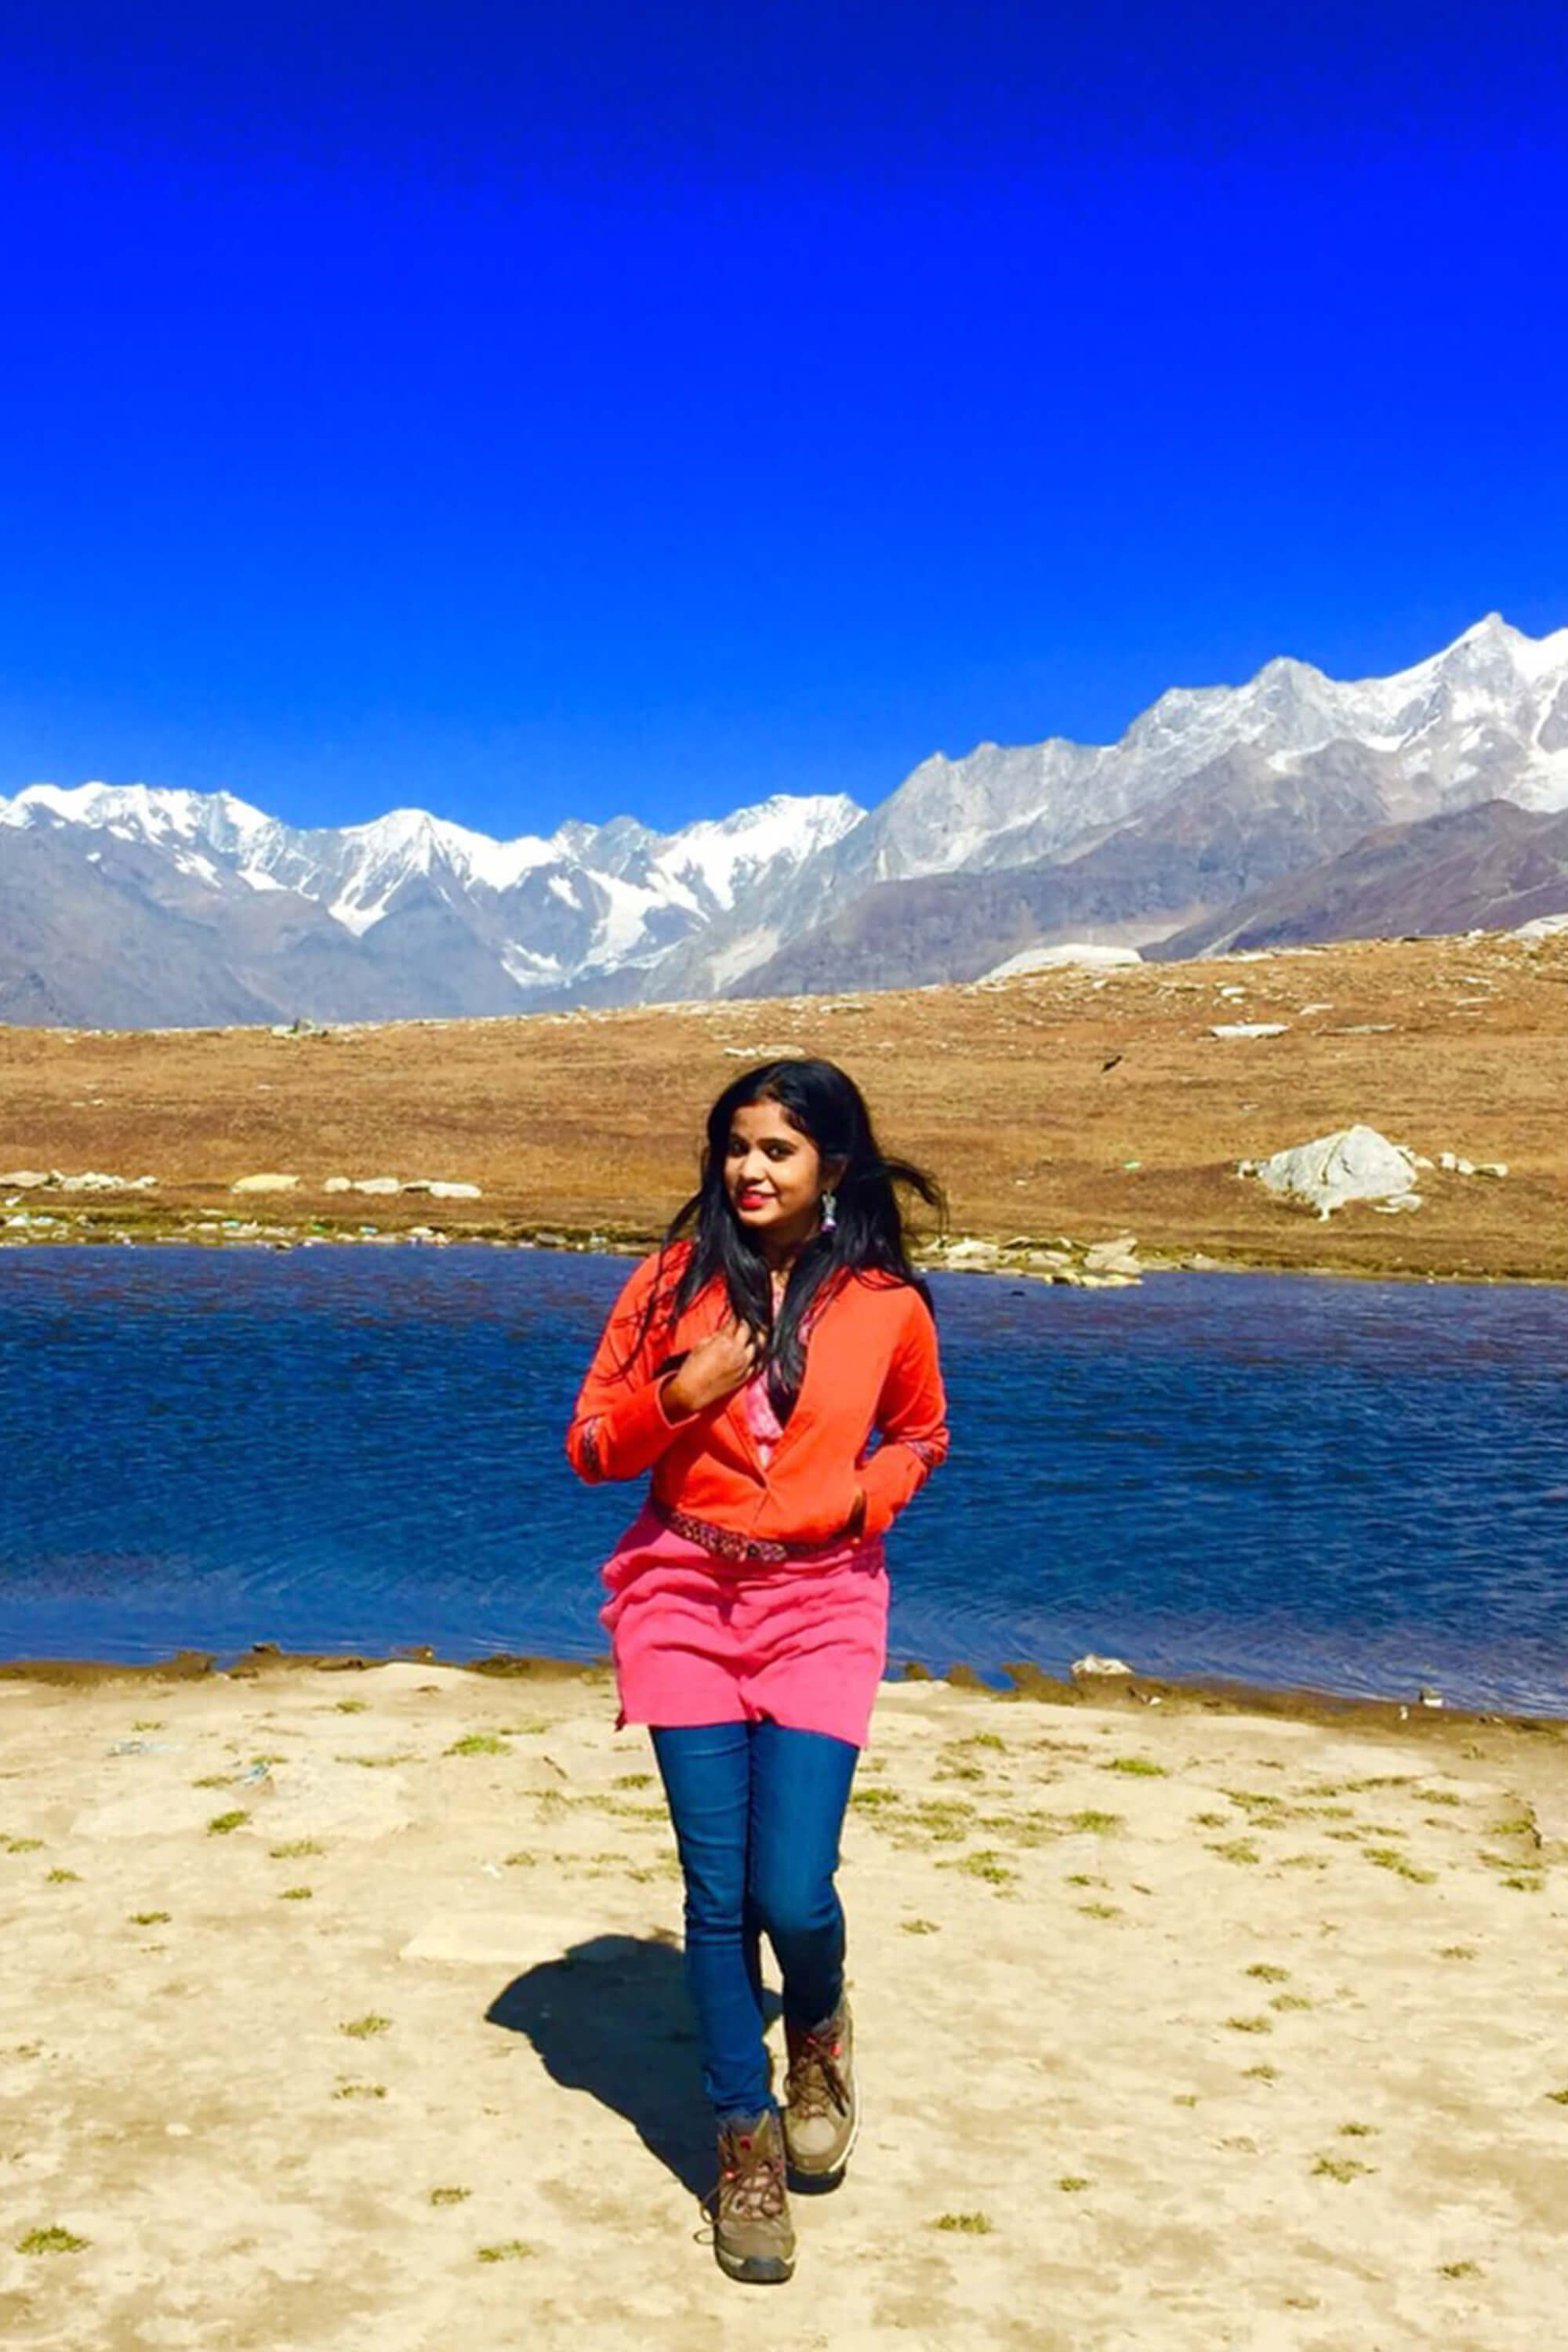 lost somewhere in rohtang